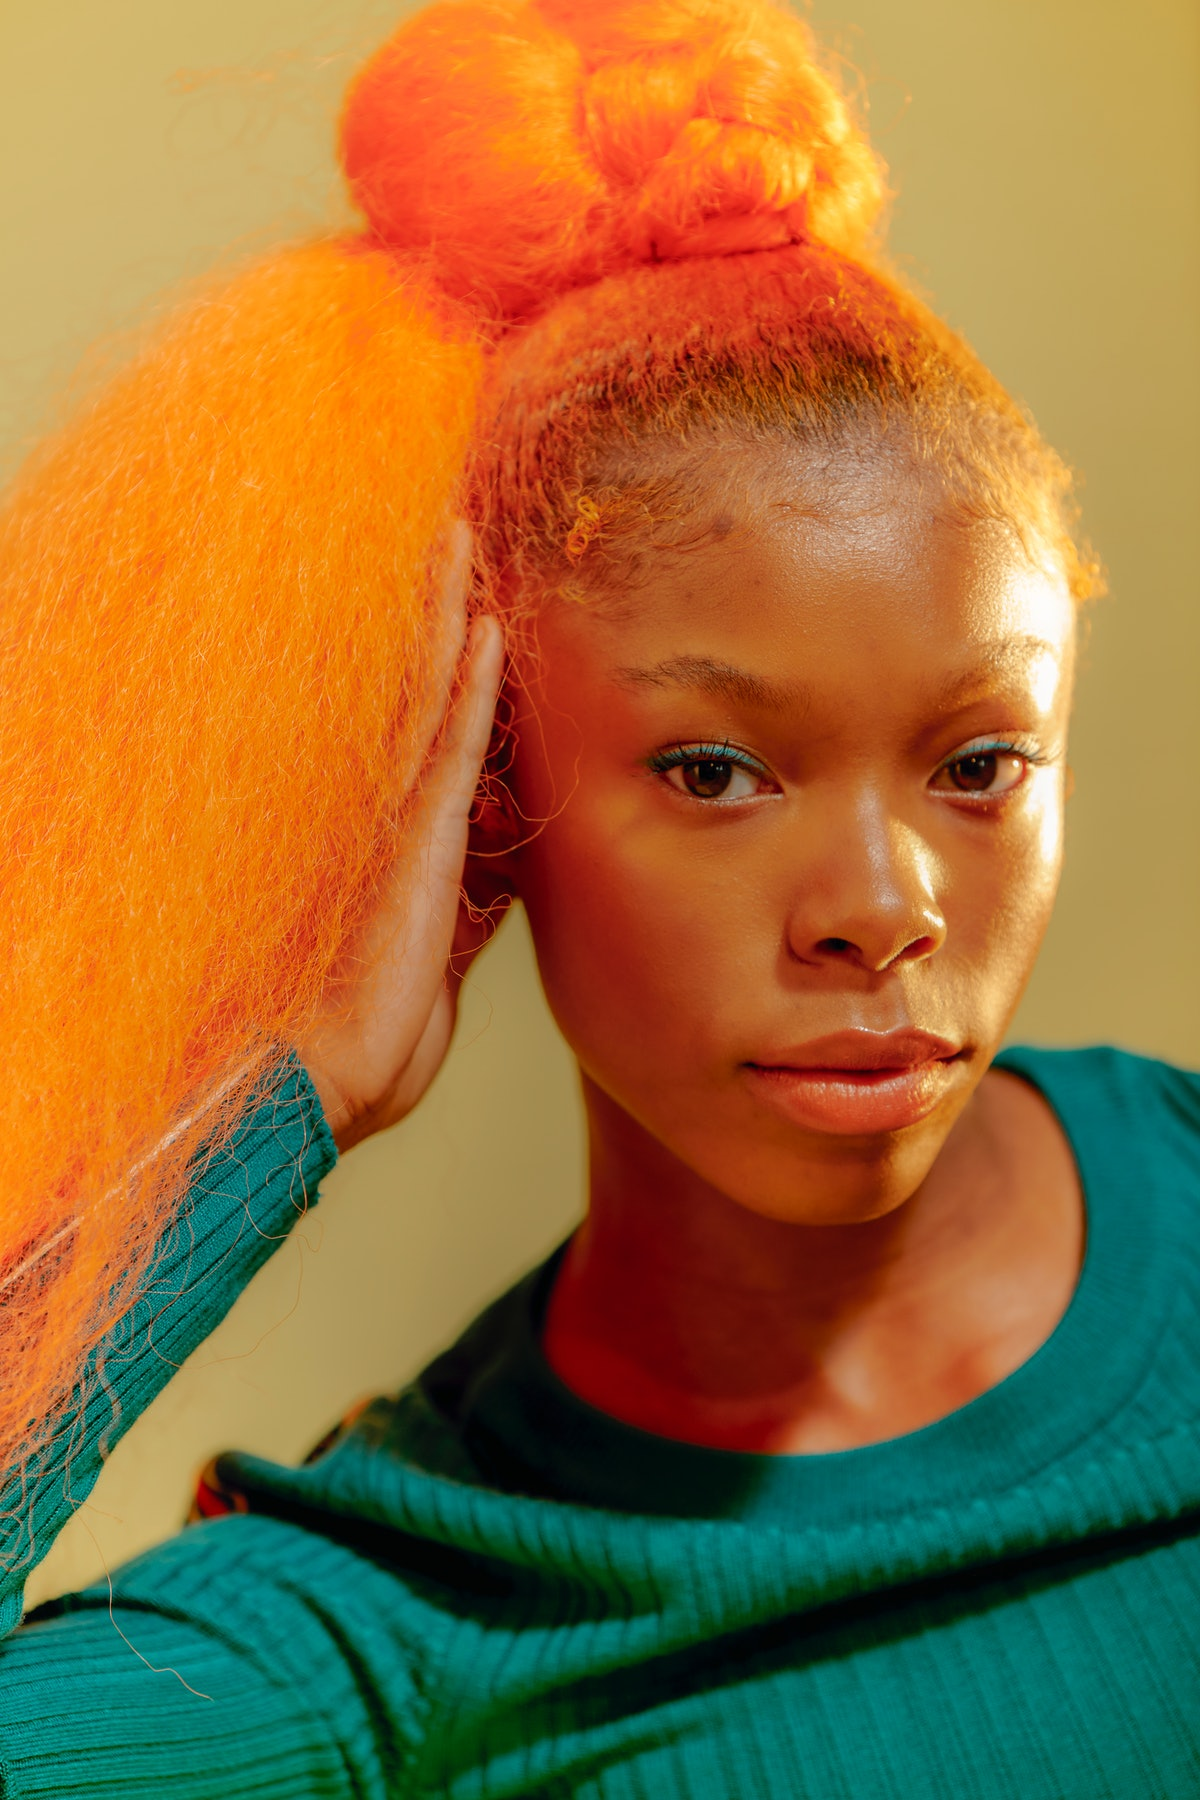 Young Pisces woman with orange hair, who's often misunderstood.